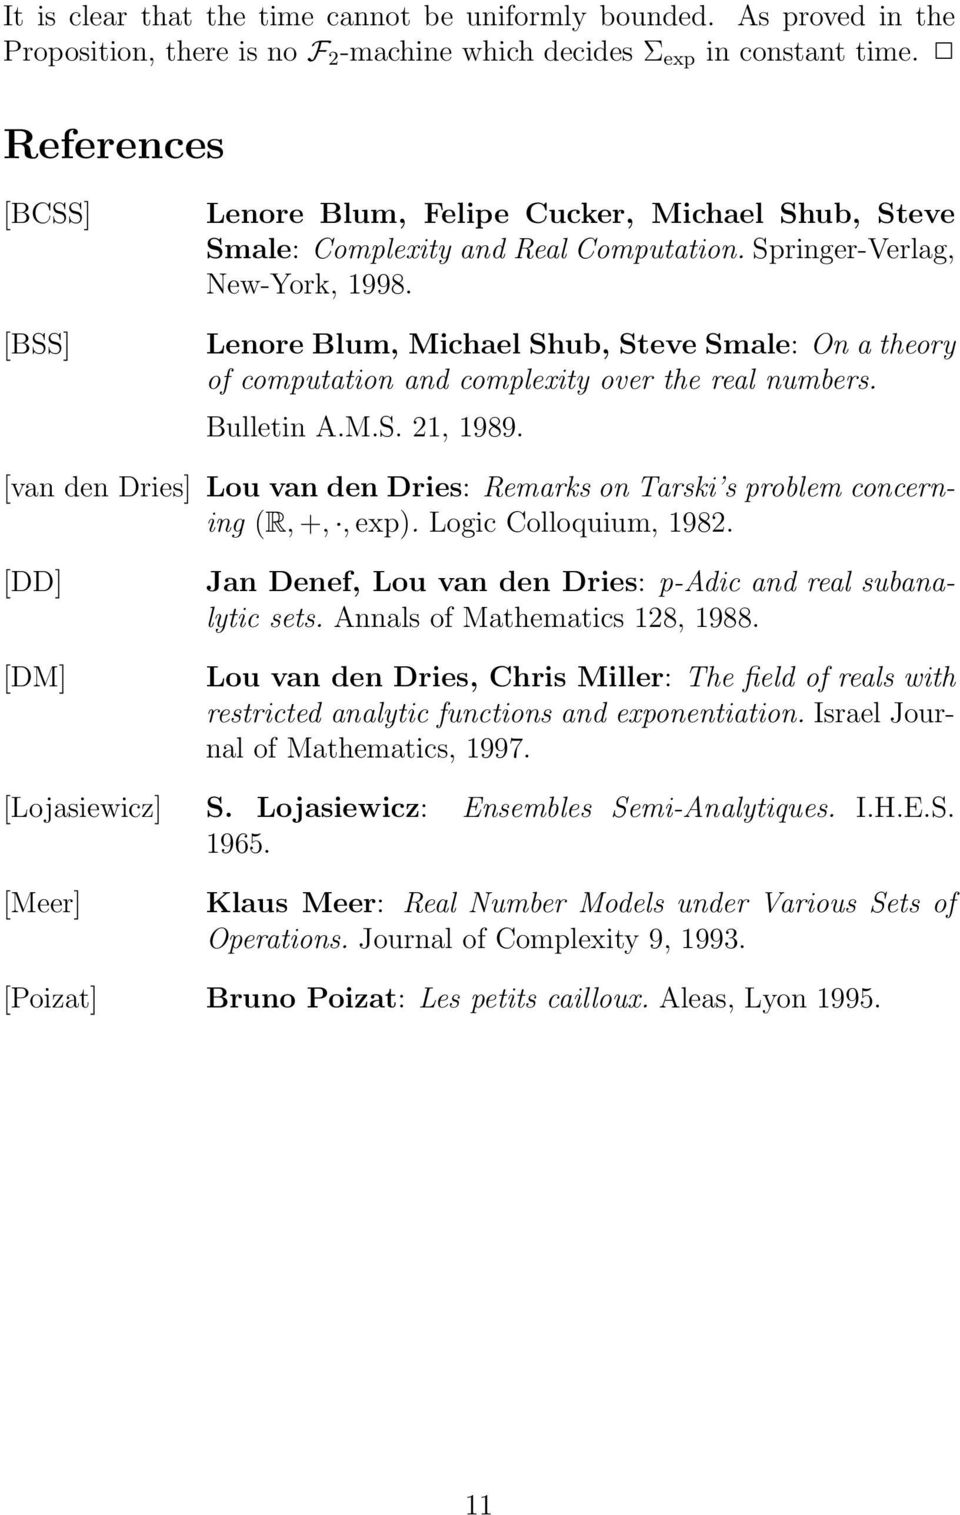 Lenore Blum, Michael Shub, Steve Smale: On a theory of computation and complexity over the real numbers. Bulletin A.M.S. 21, 1989.